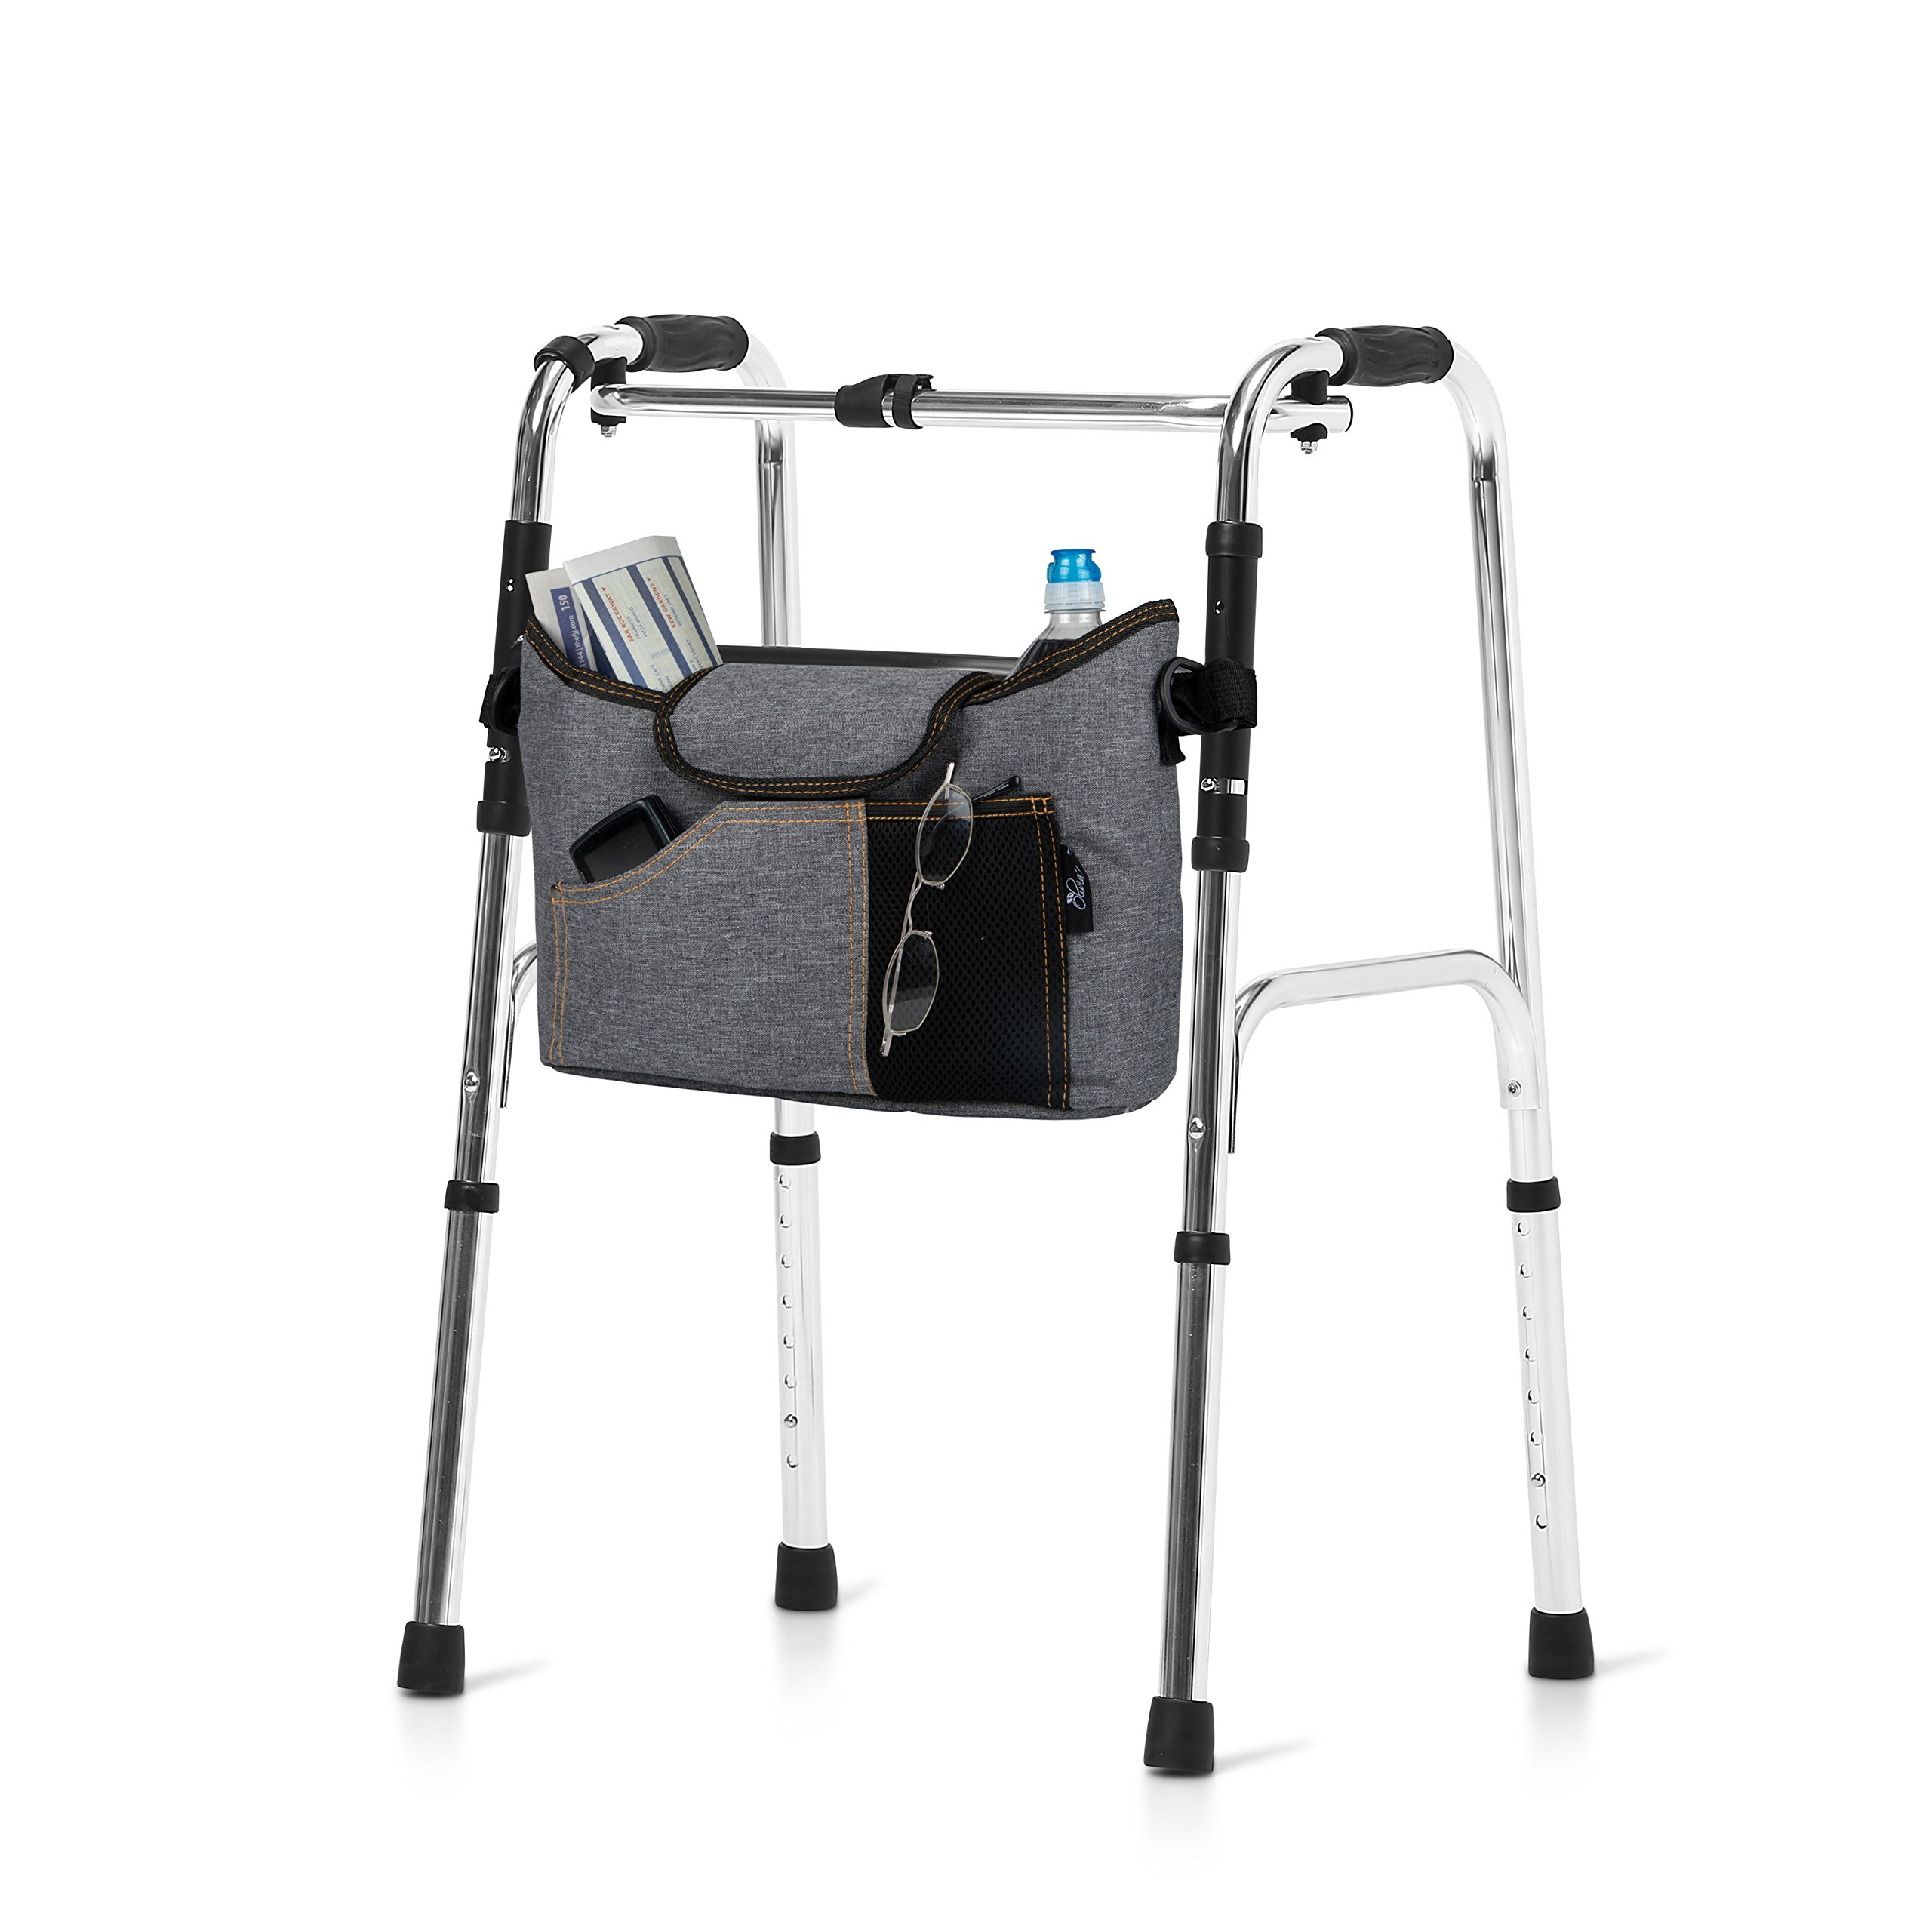 Olivia & Aiden Walker Bag - Wheelchair Pouch for Standard Walkers, Wheelchairs, Bariatric Walkers, and Dual-Point Folding Walkers - Keeps Your Necessities, Accessible and Organized - 2 Bonus Bag Hooks